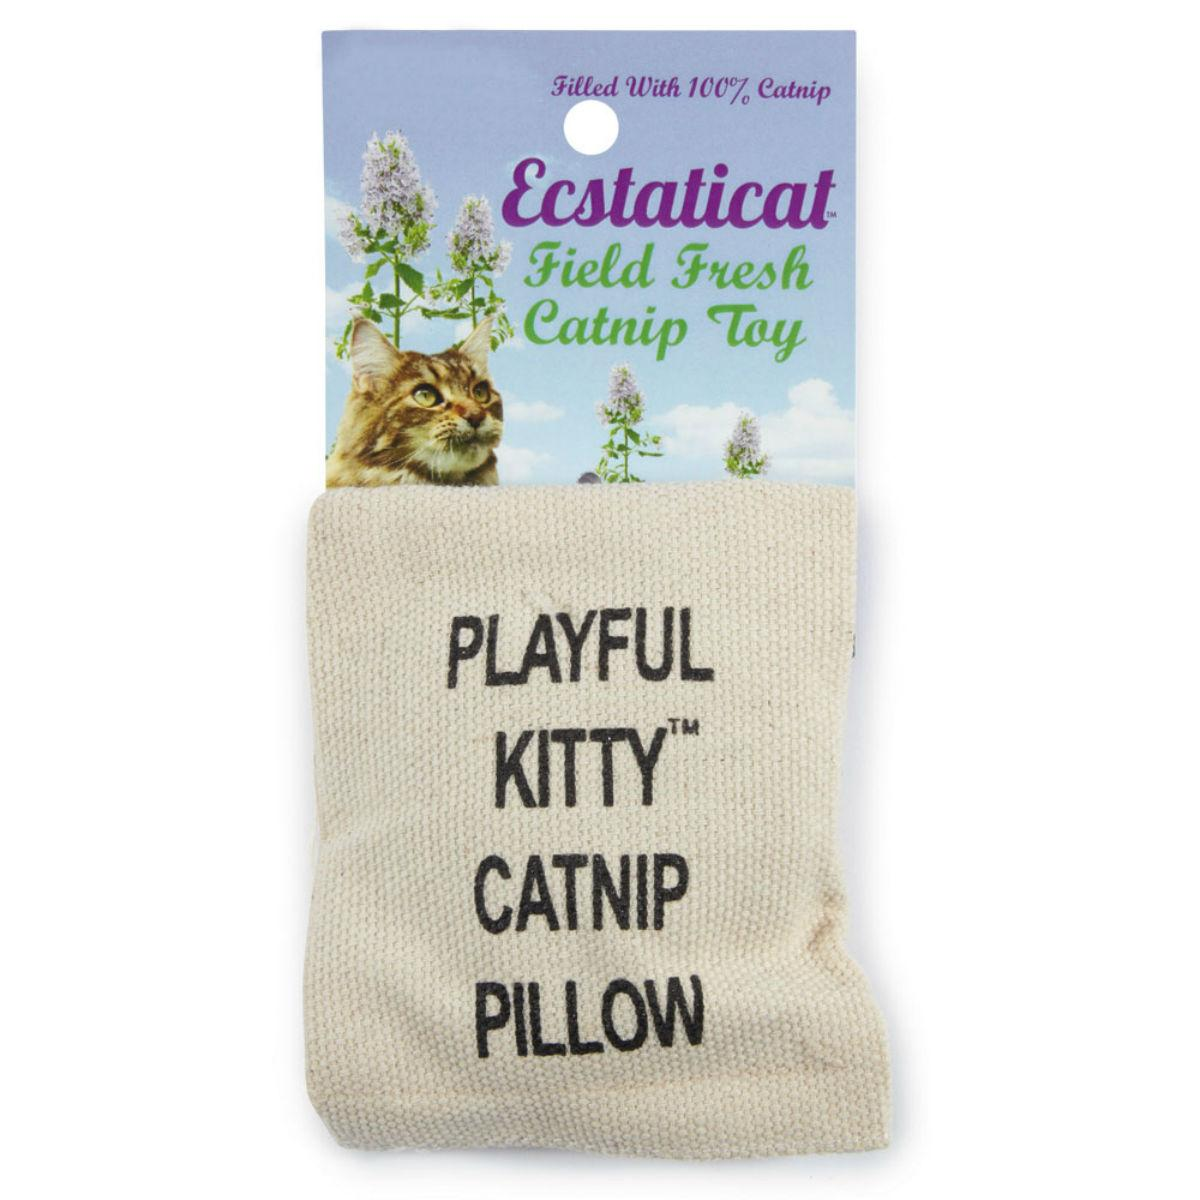 Ecstaticat Catnip Pillow Cat Toy